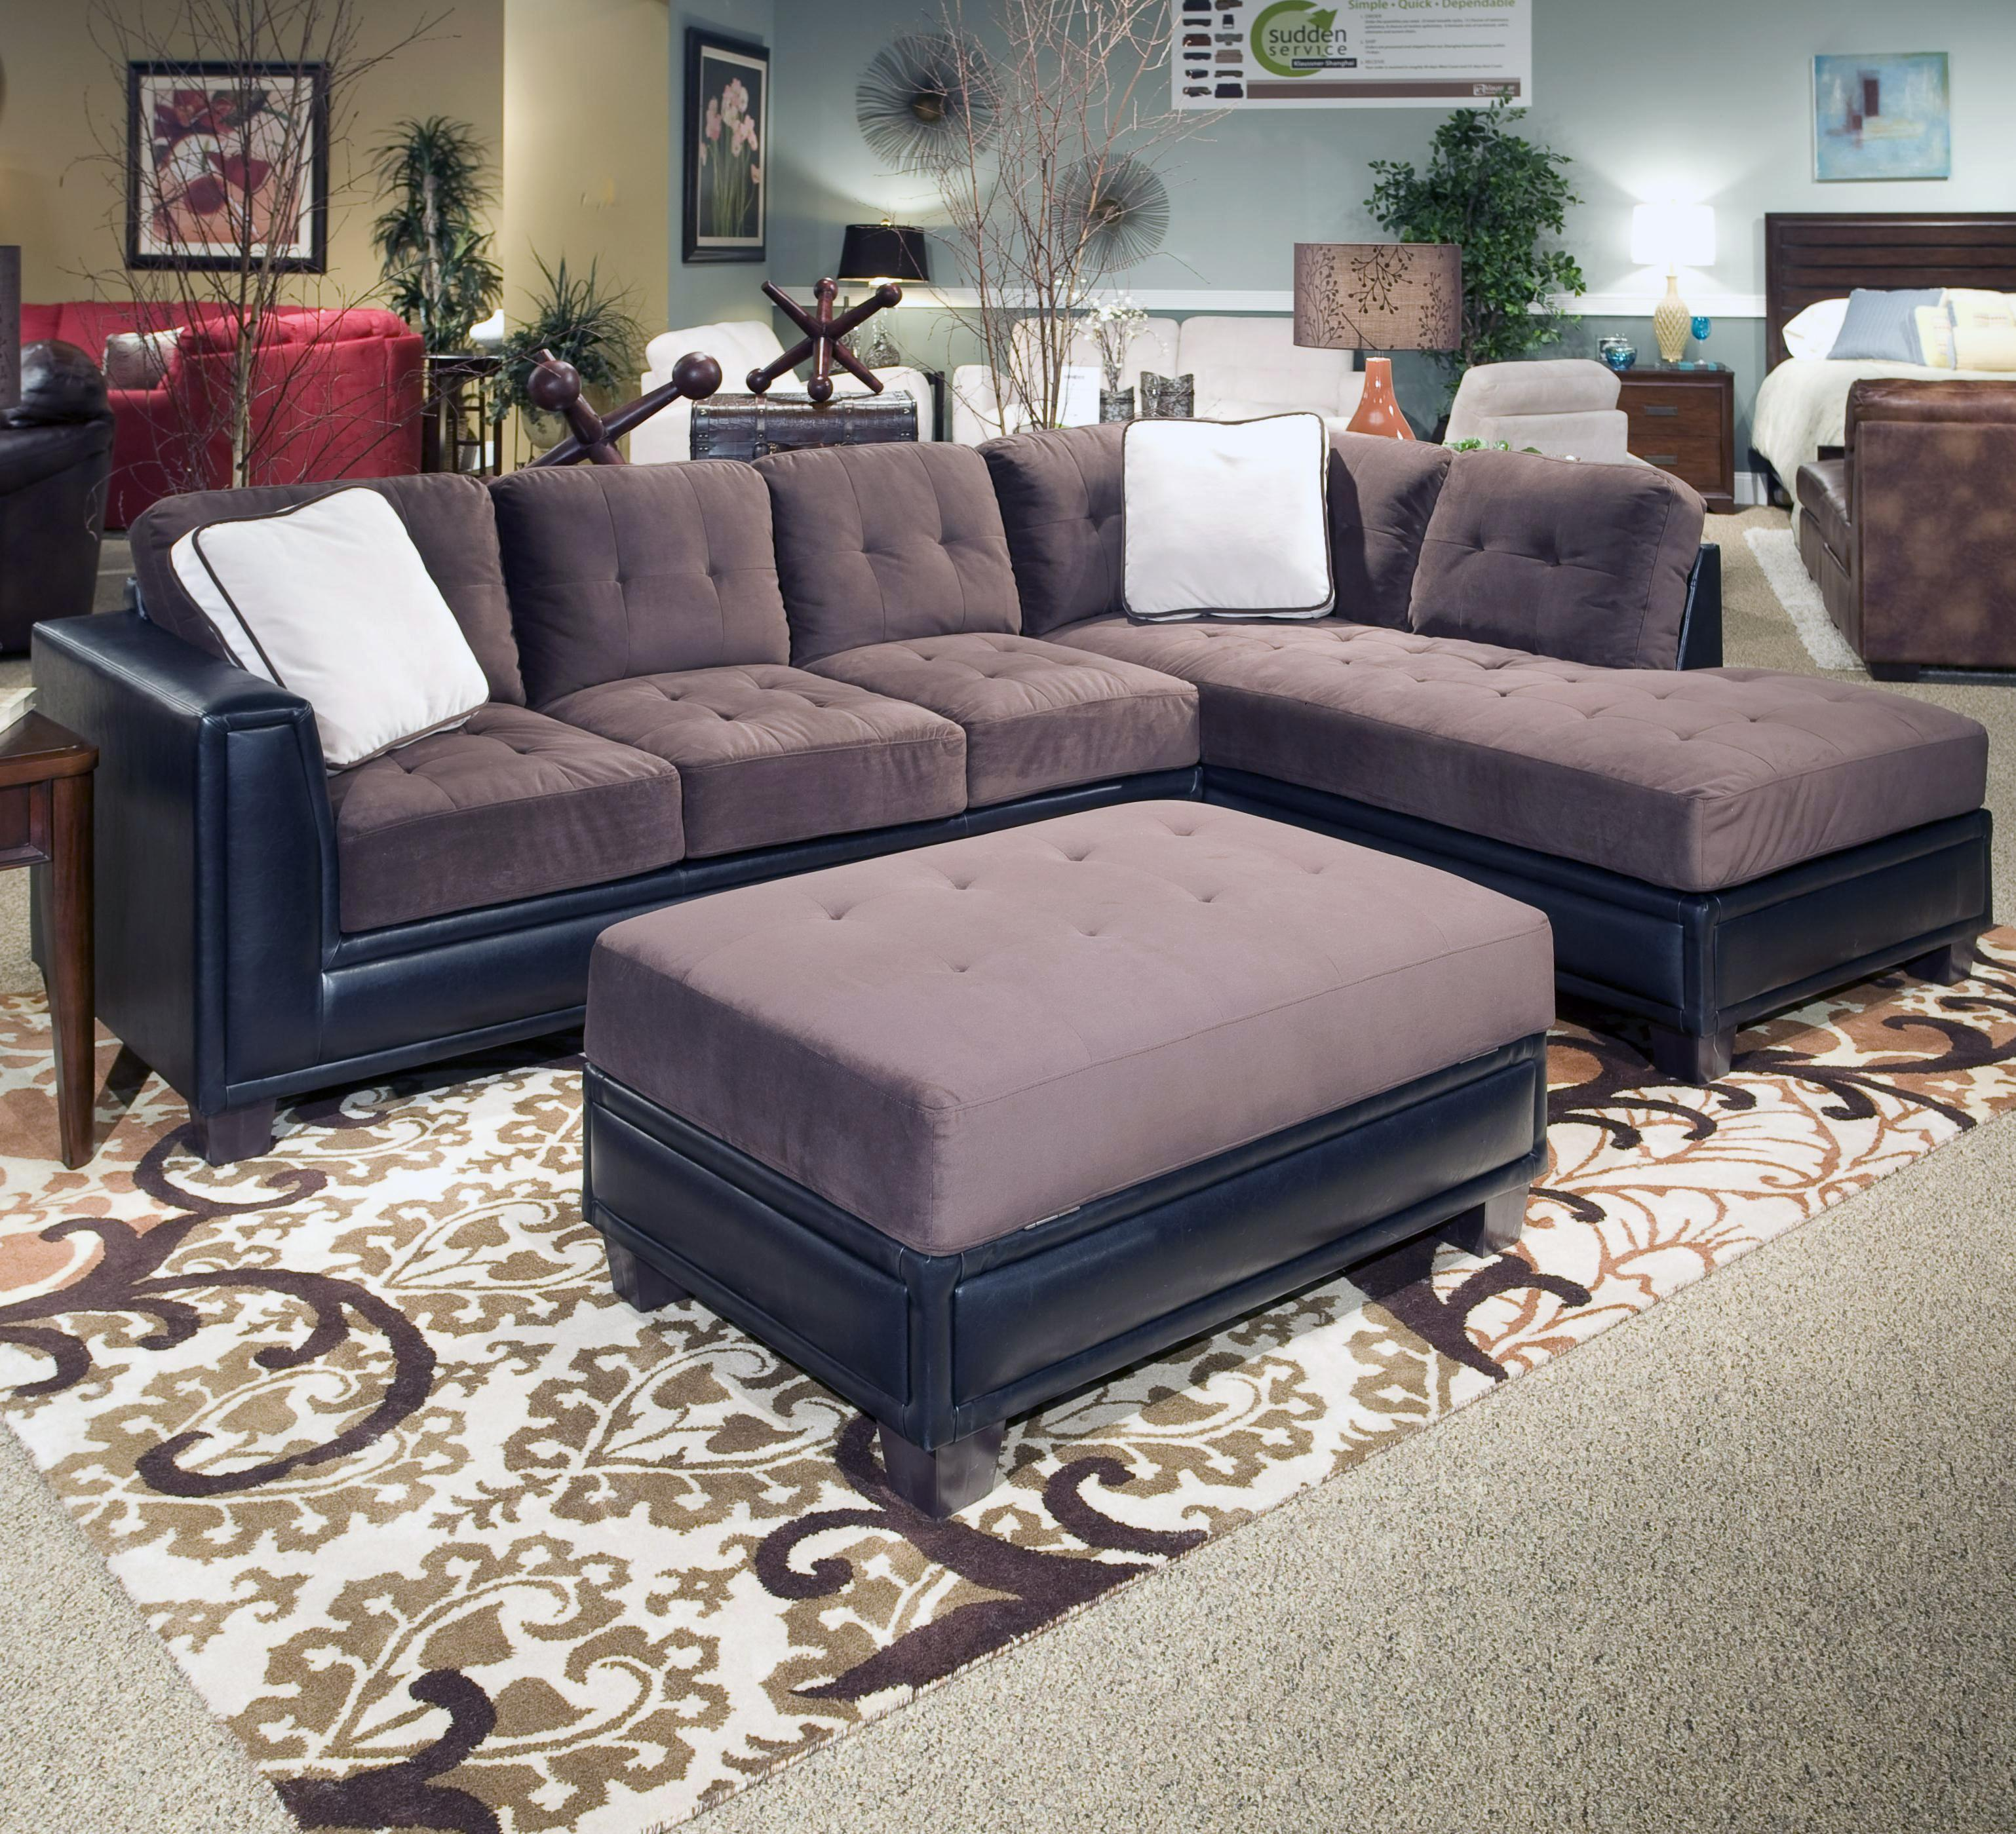 Norwich 3 Piece Sectional and Ottoman Group by Klaussner International at Northeast Factory Direct